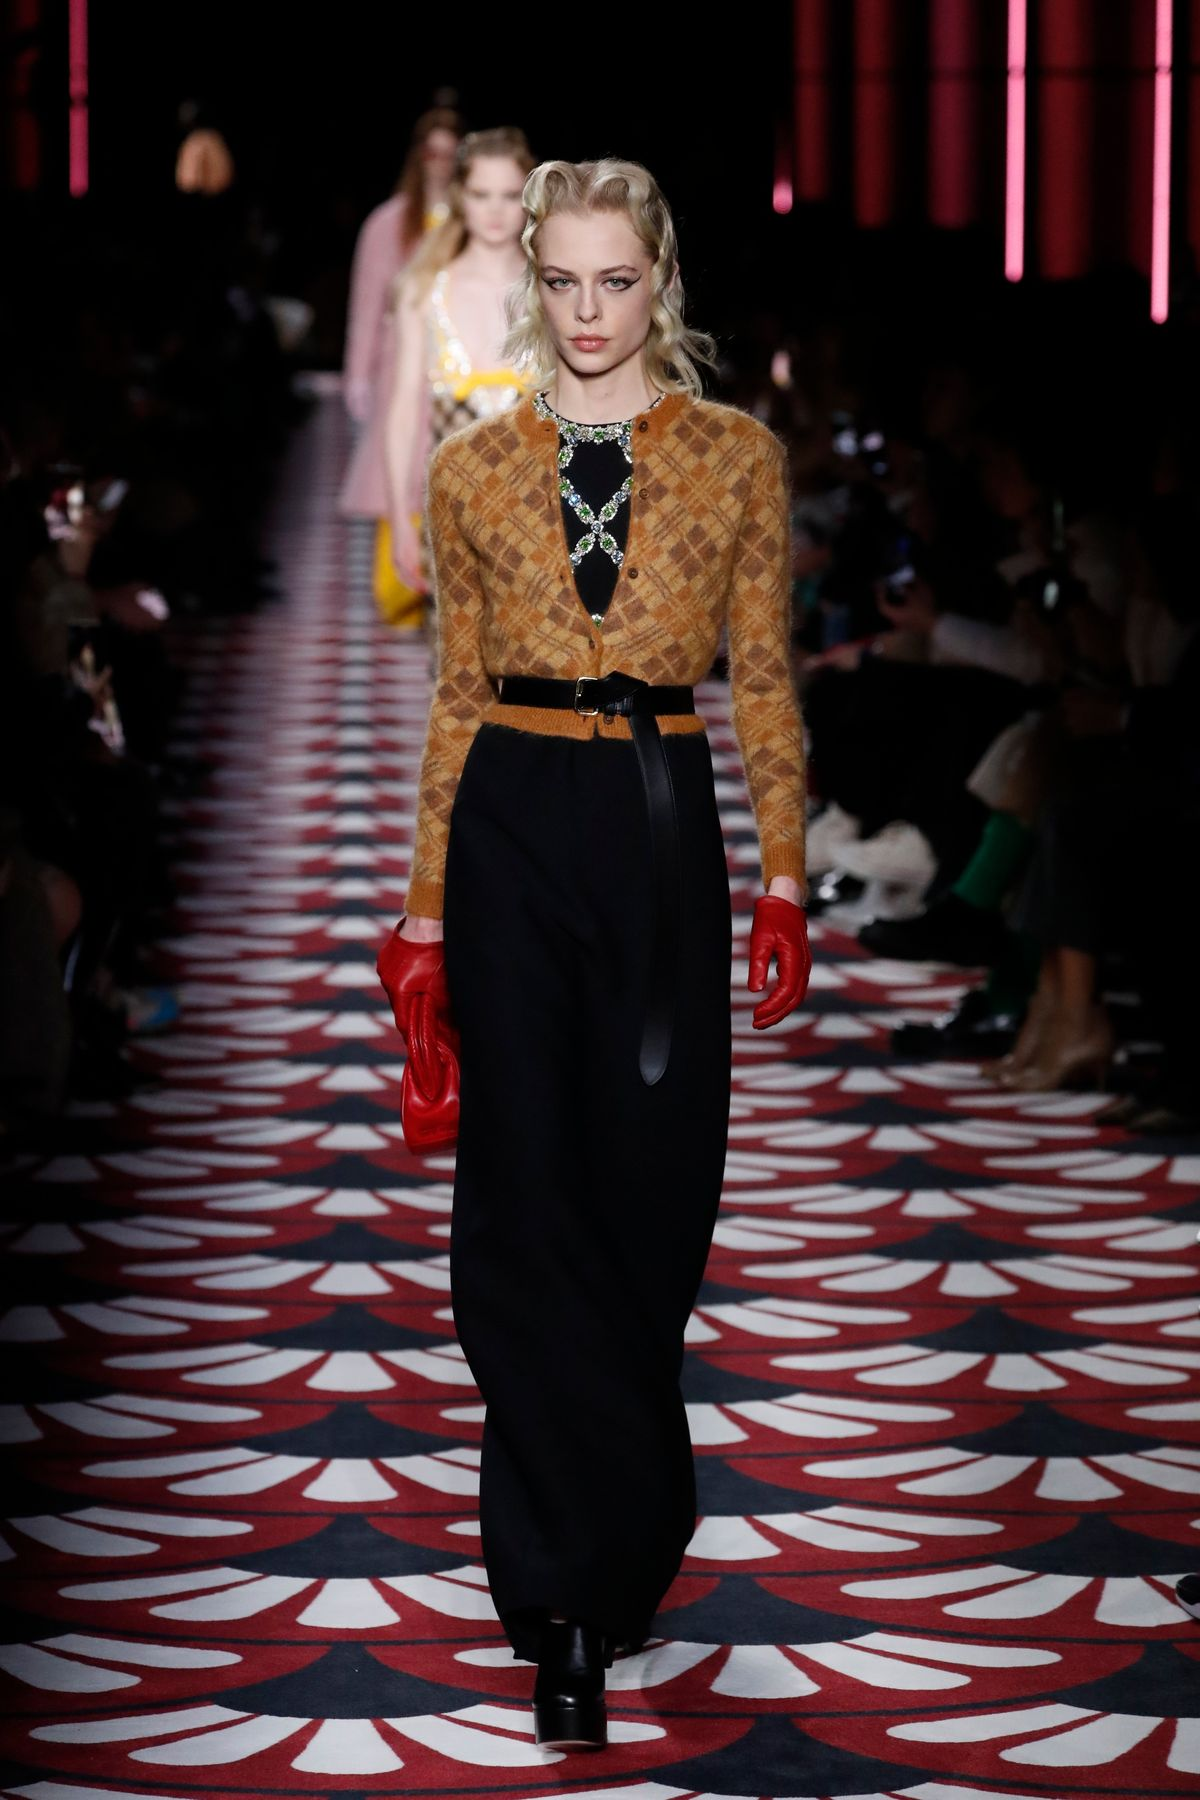 Paris, Ready-to-Wear, Herbst/Winter 2020/21 (ddp images)